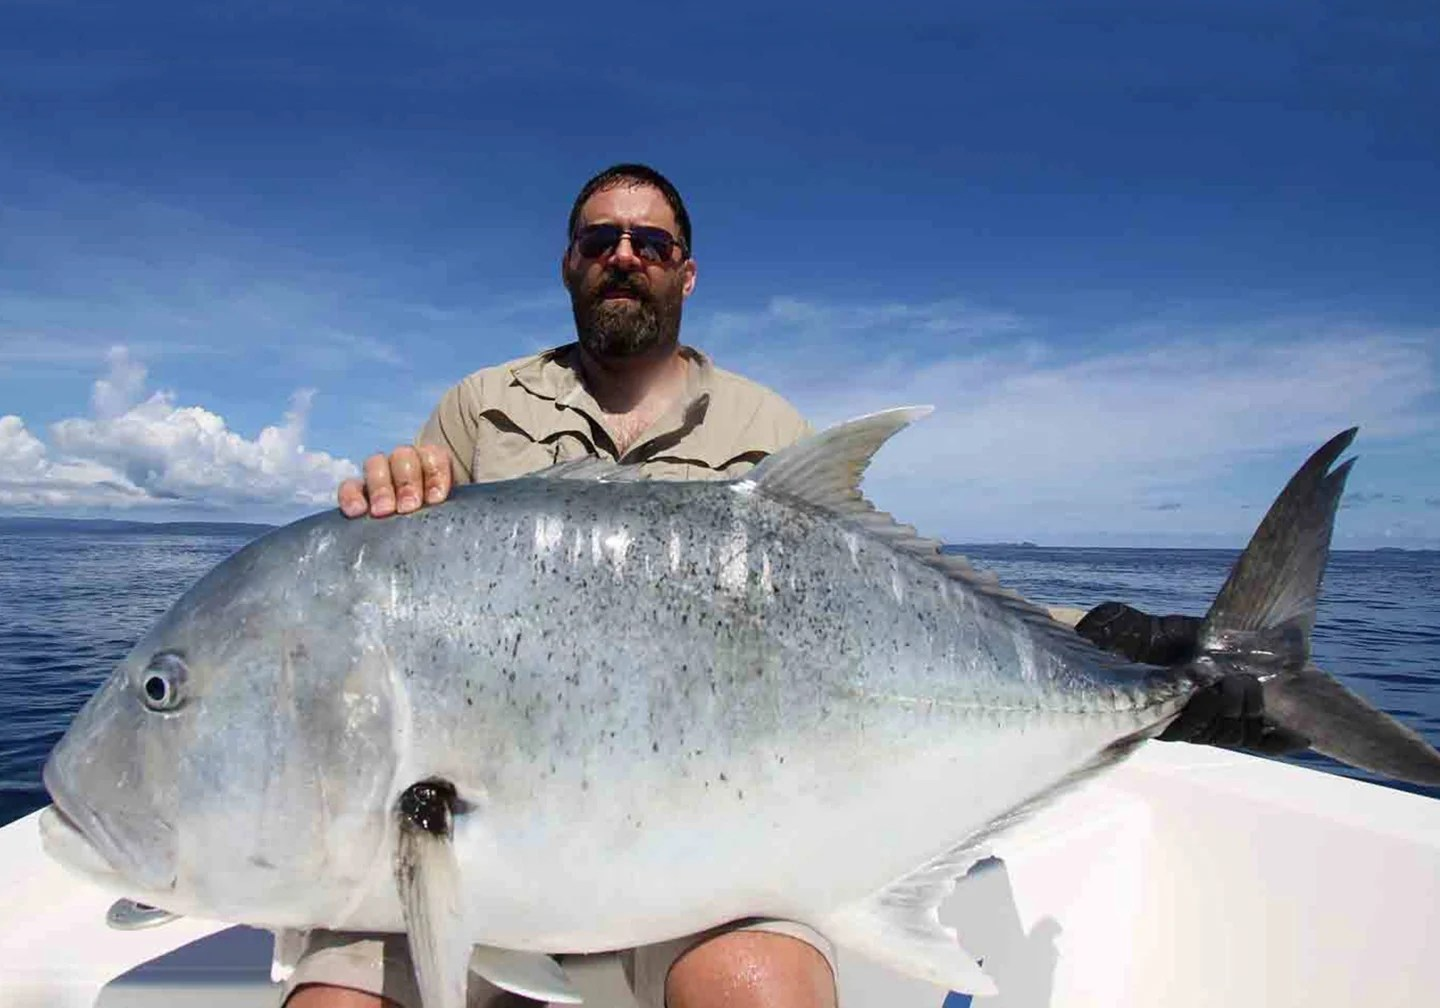 A male angler with a large Giant Trevally fish on his lap